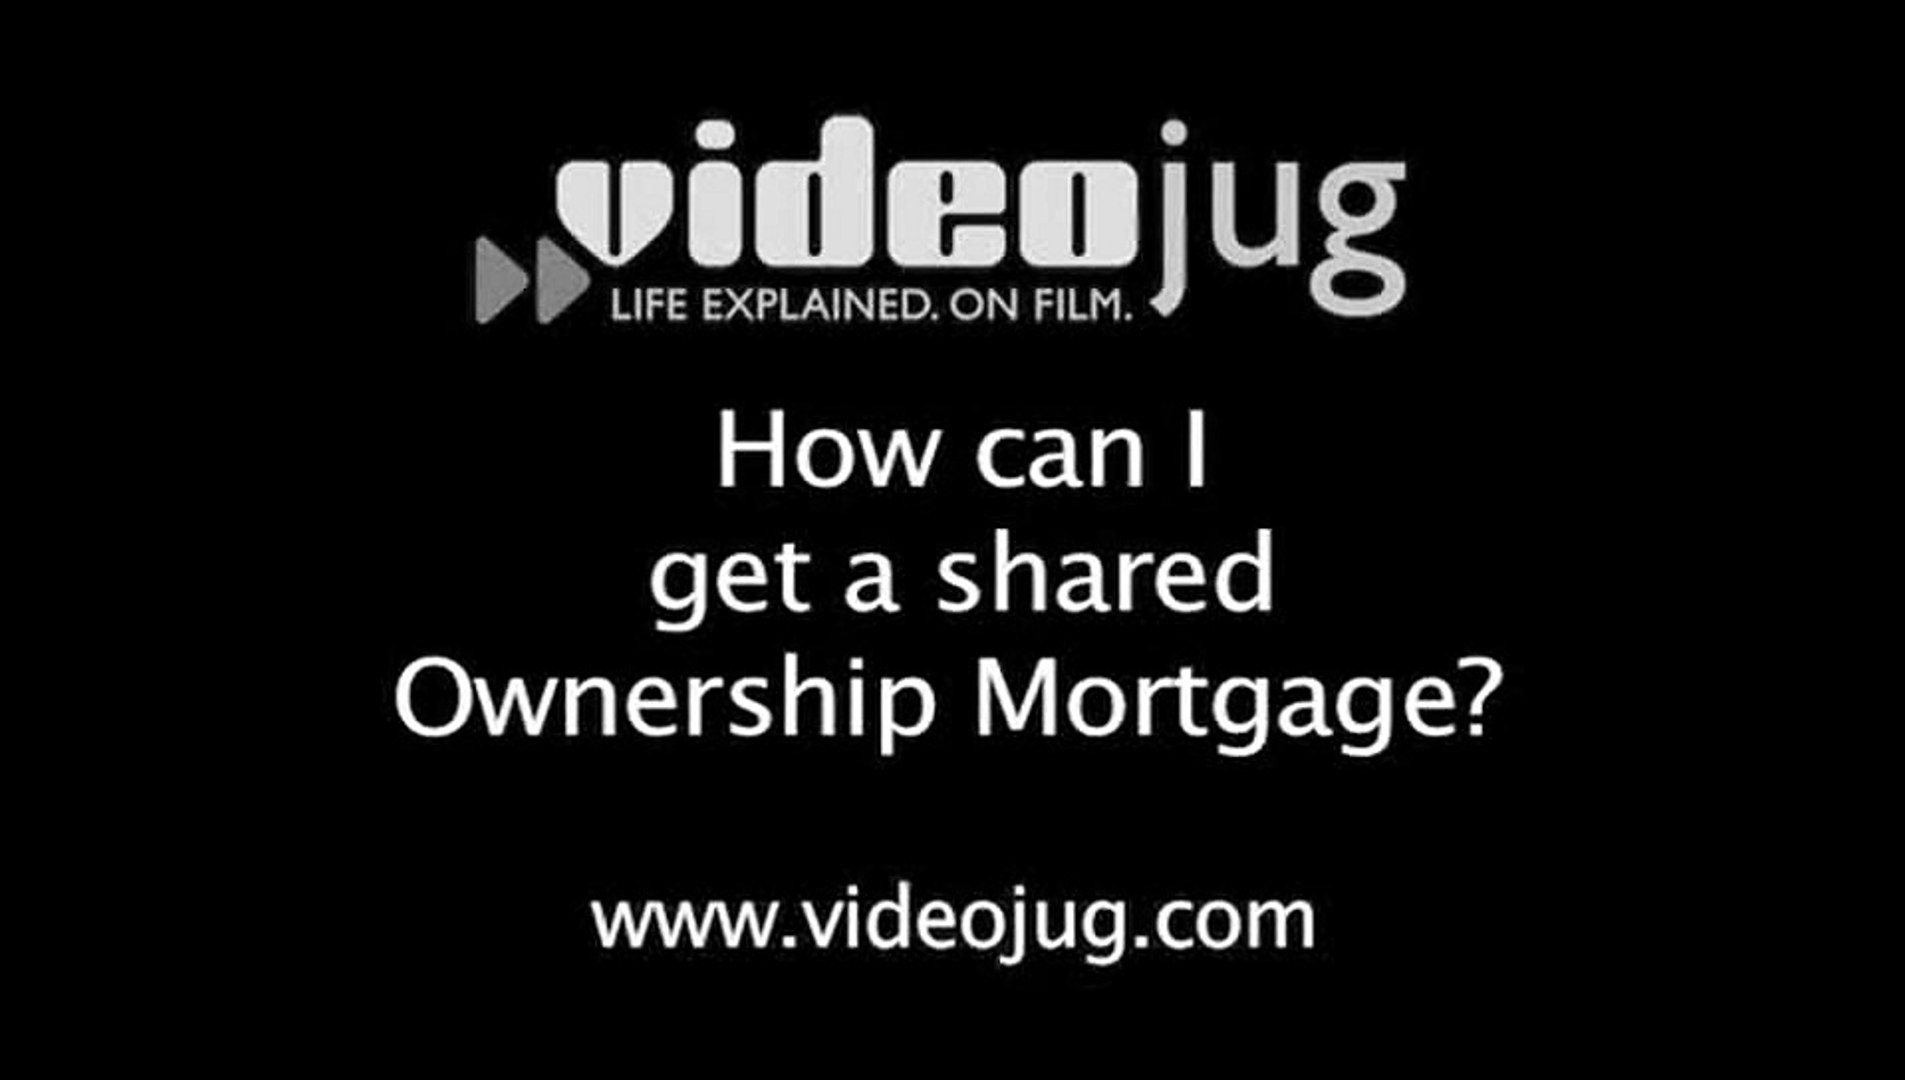 How can I get a shared ownership mortgage?: How To Get A Shared Ownership Mortgage